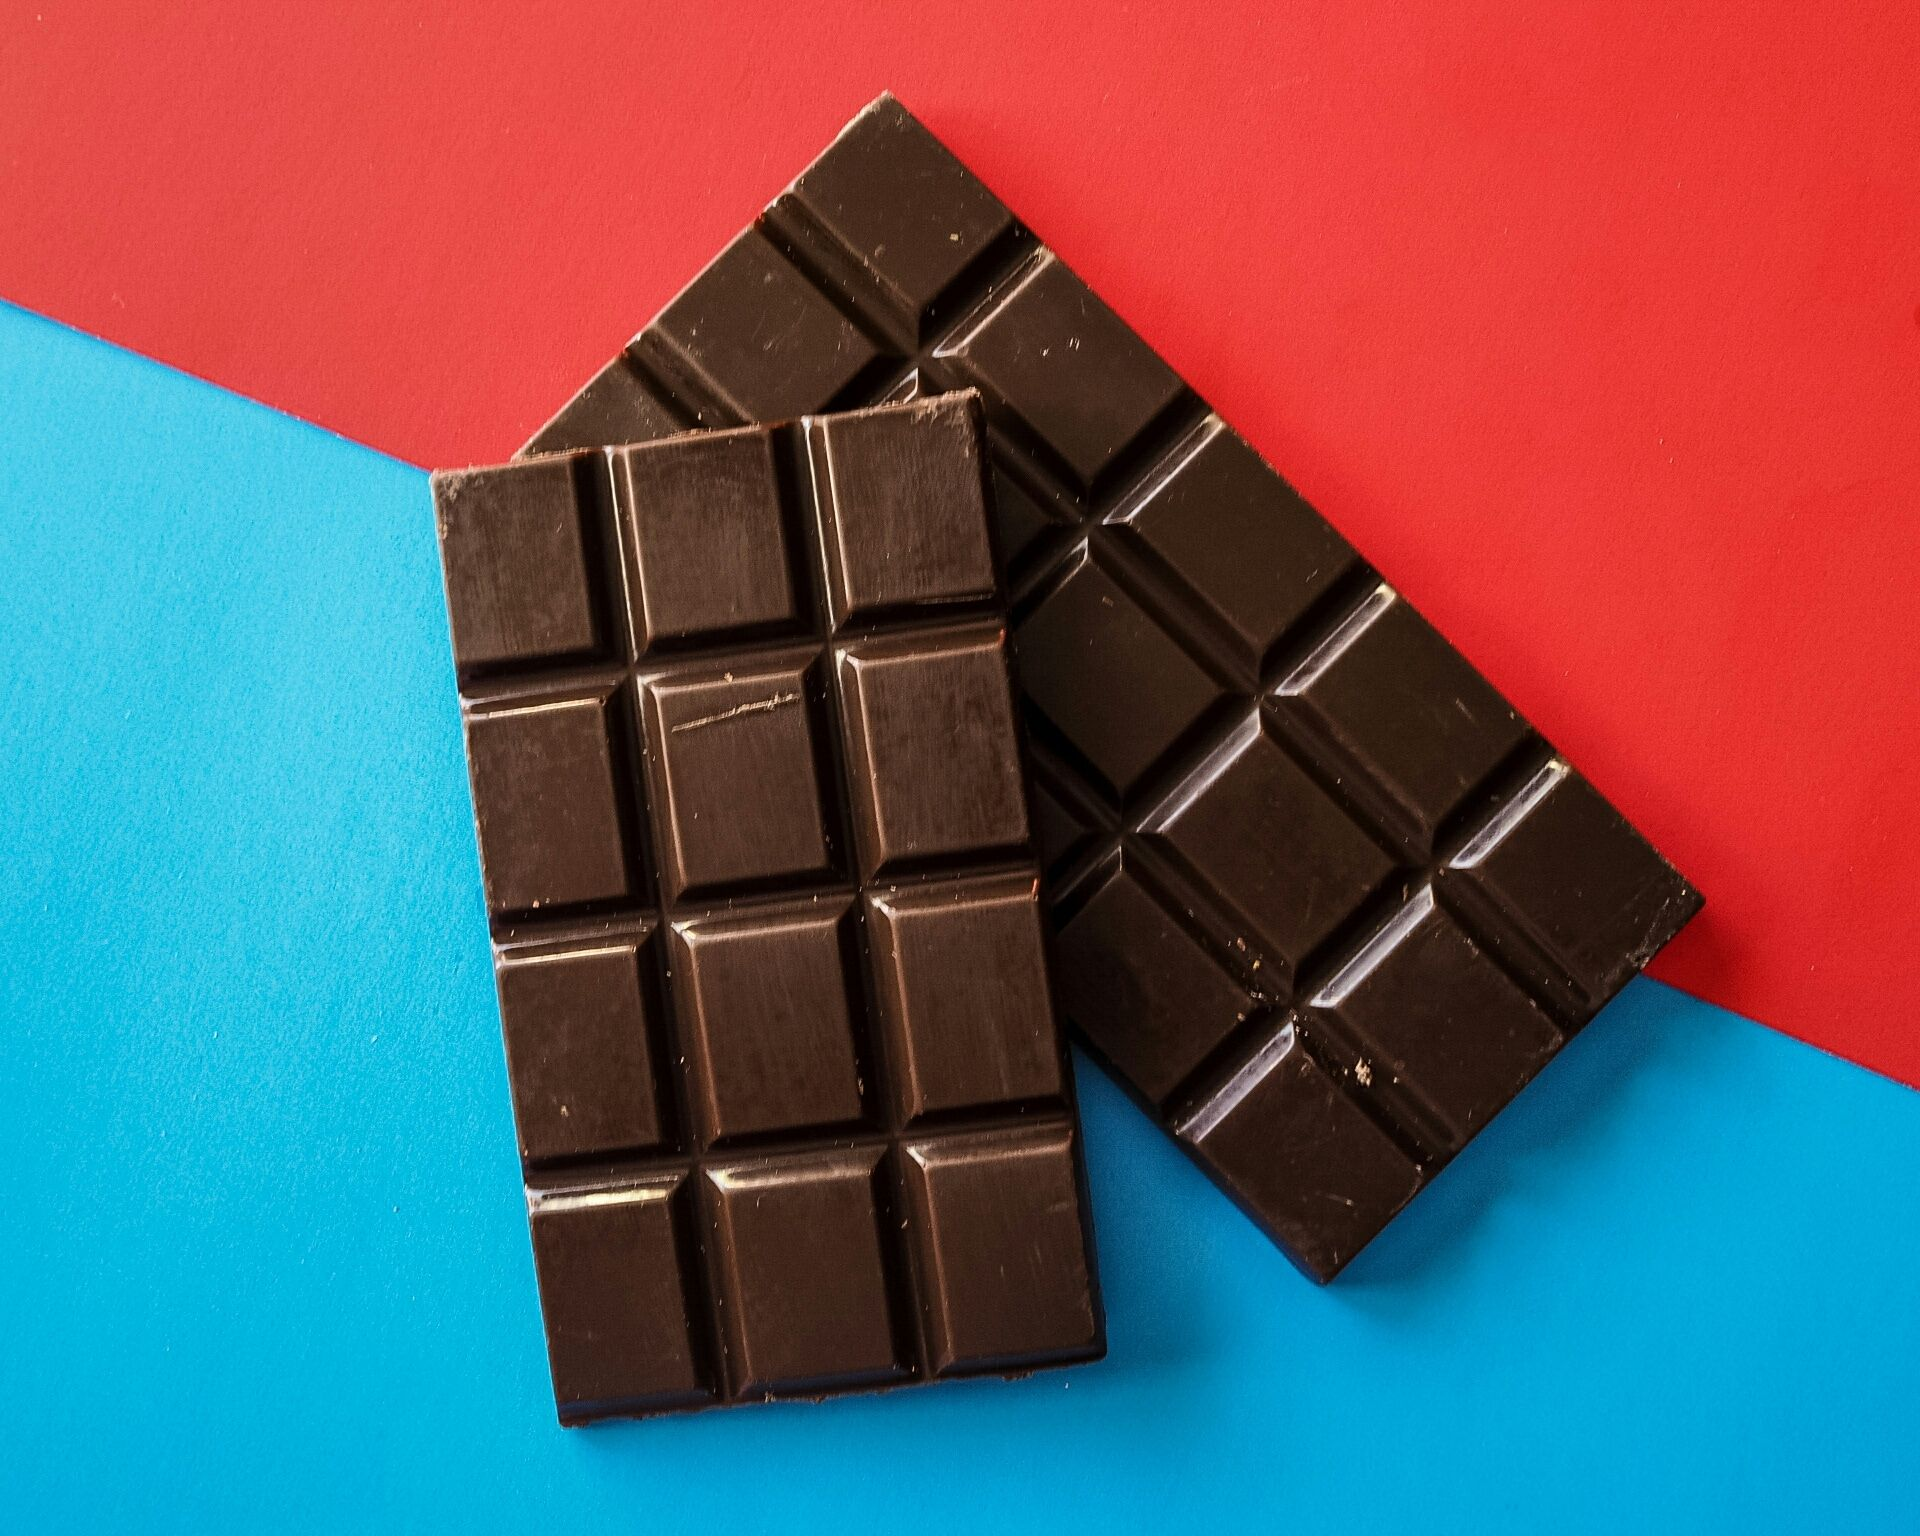 Directly Above Shot Of Chocolate Bars On Table